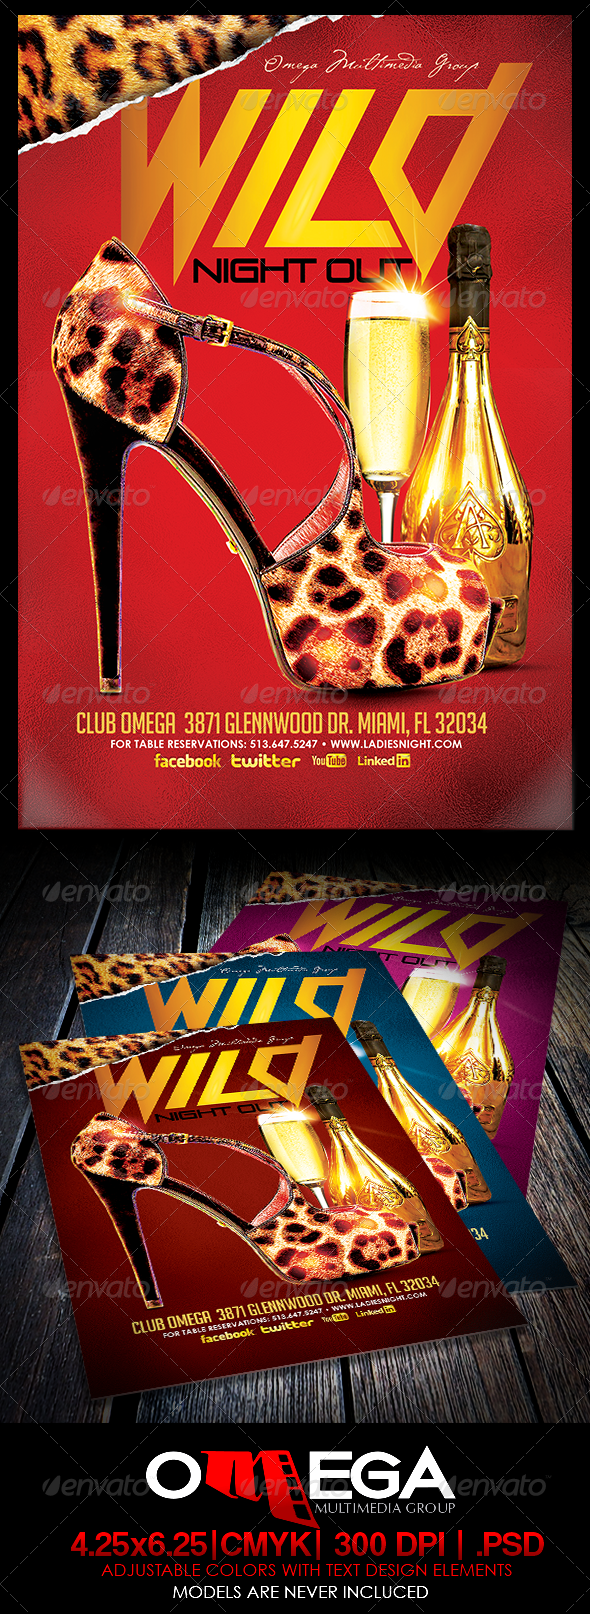 GraphicRiver Wild Night Out 6387229